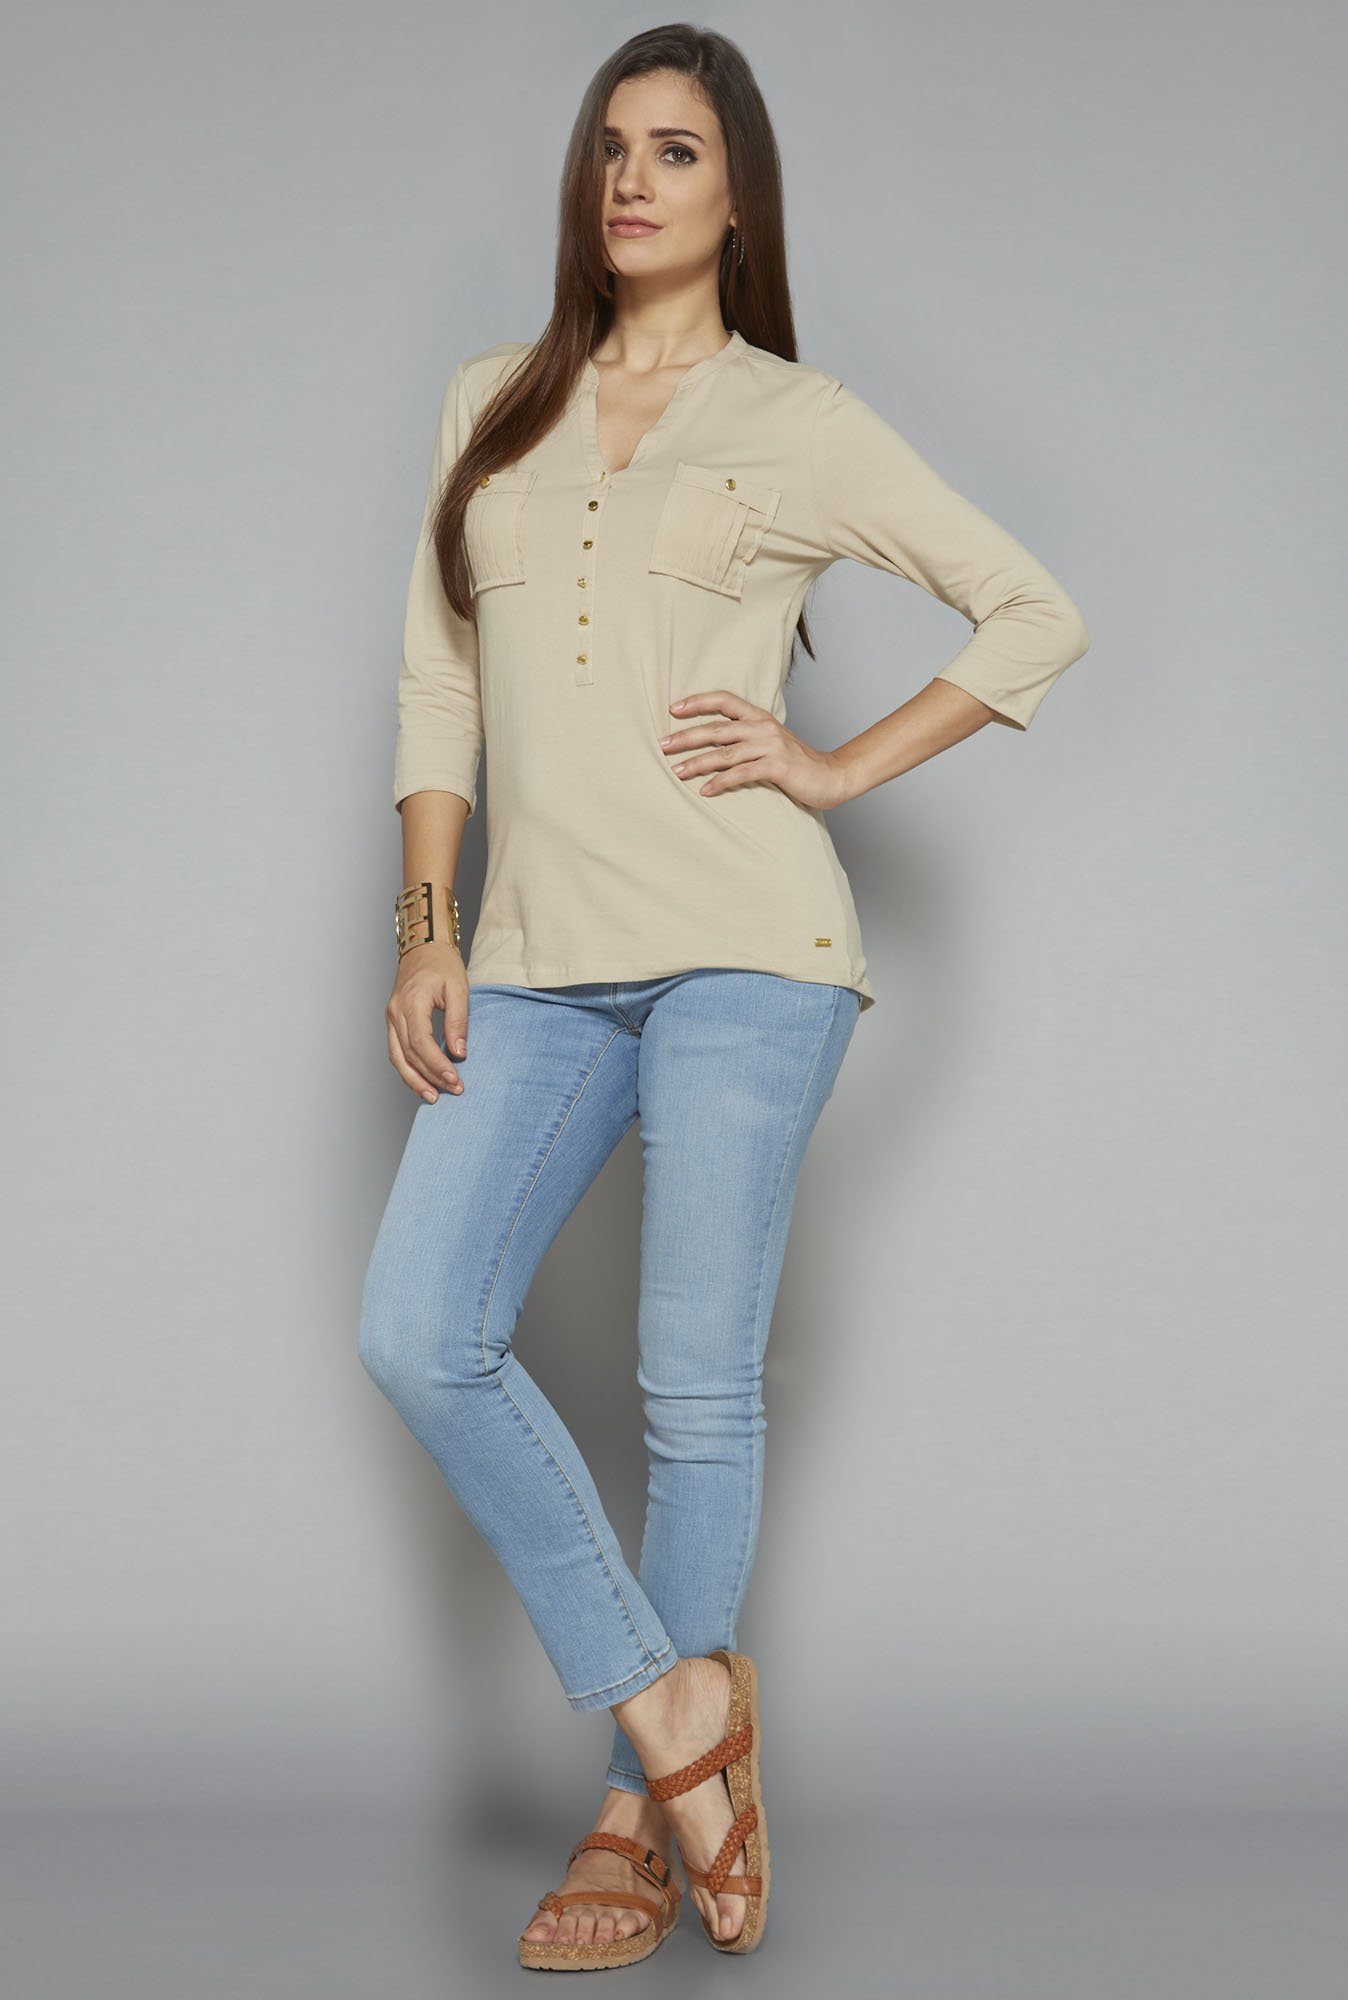 LOV by Westside Beige Solid Top